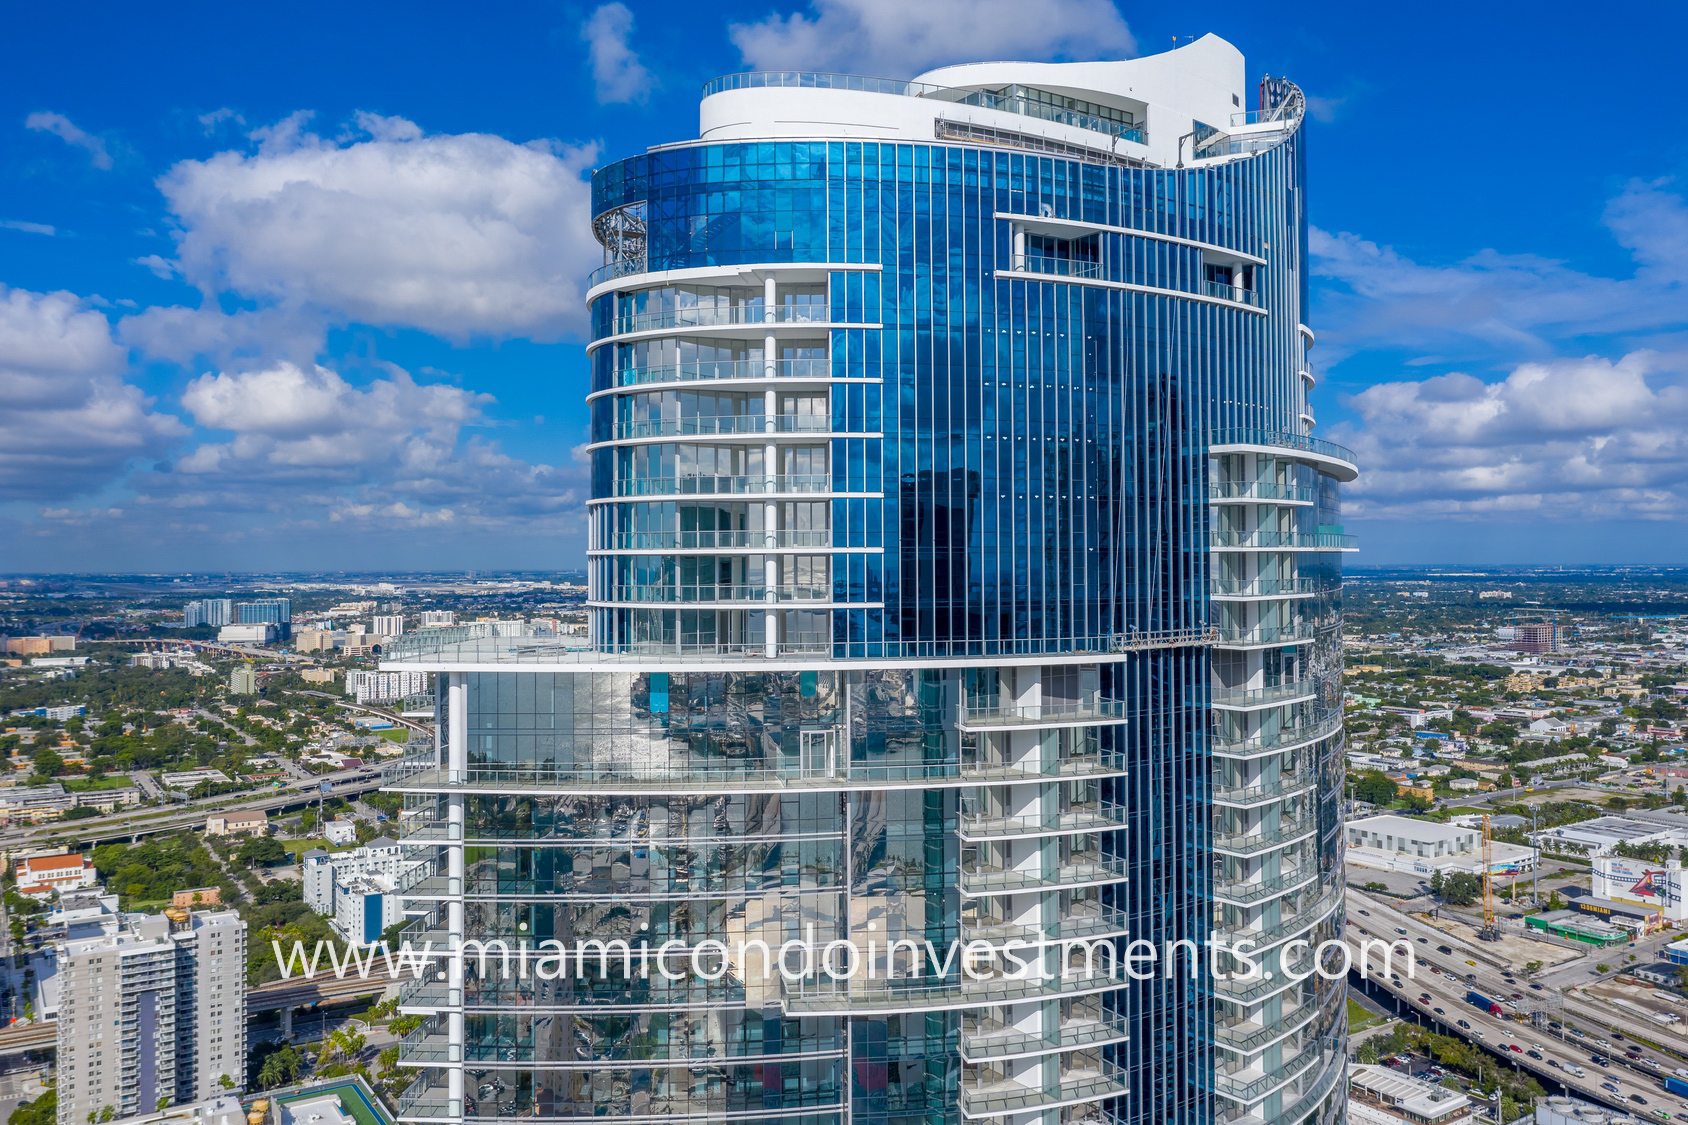 Paramount Miami Worldcenter